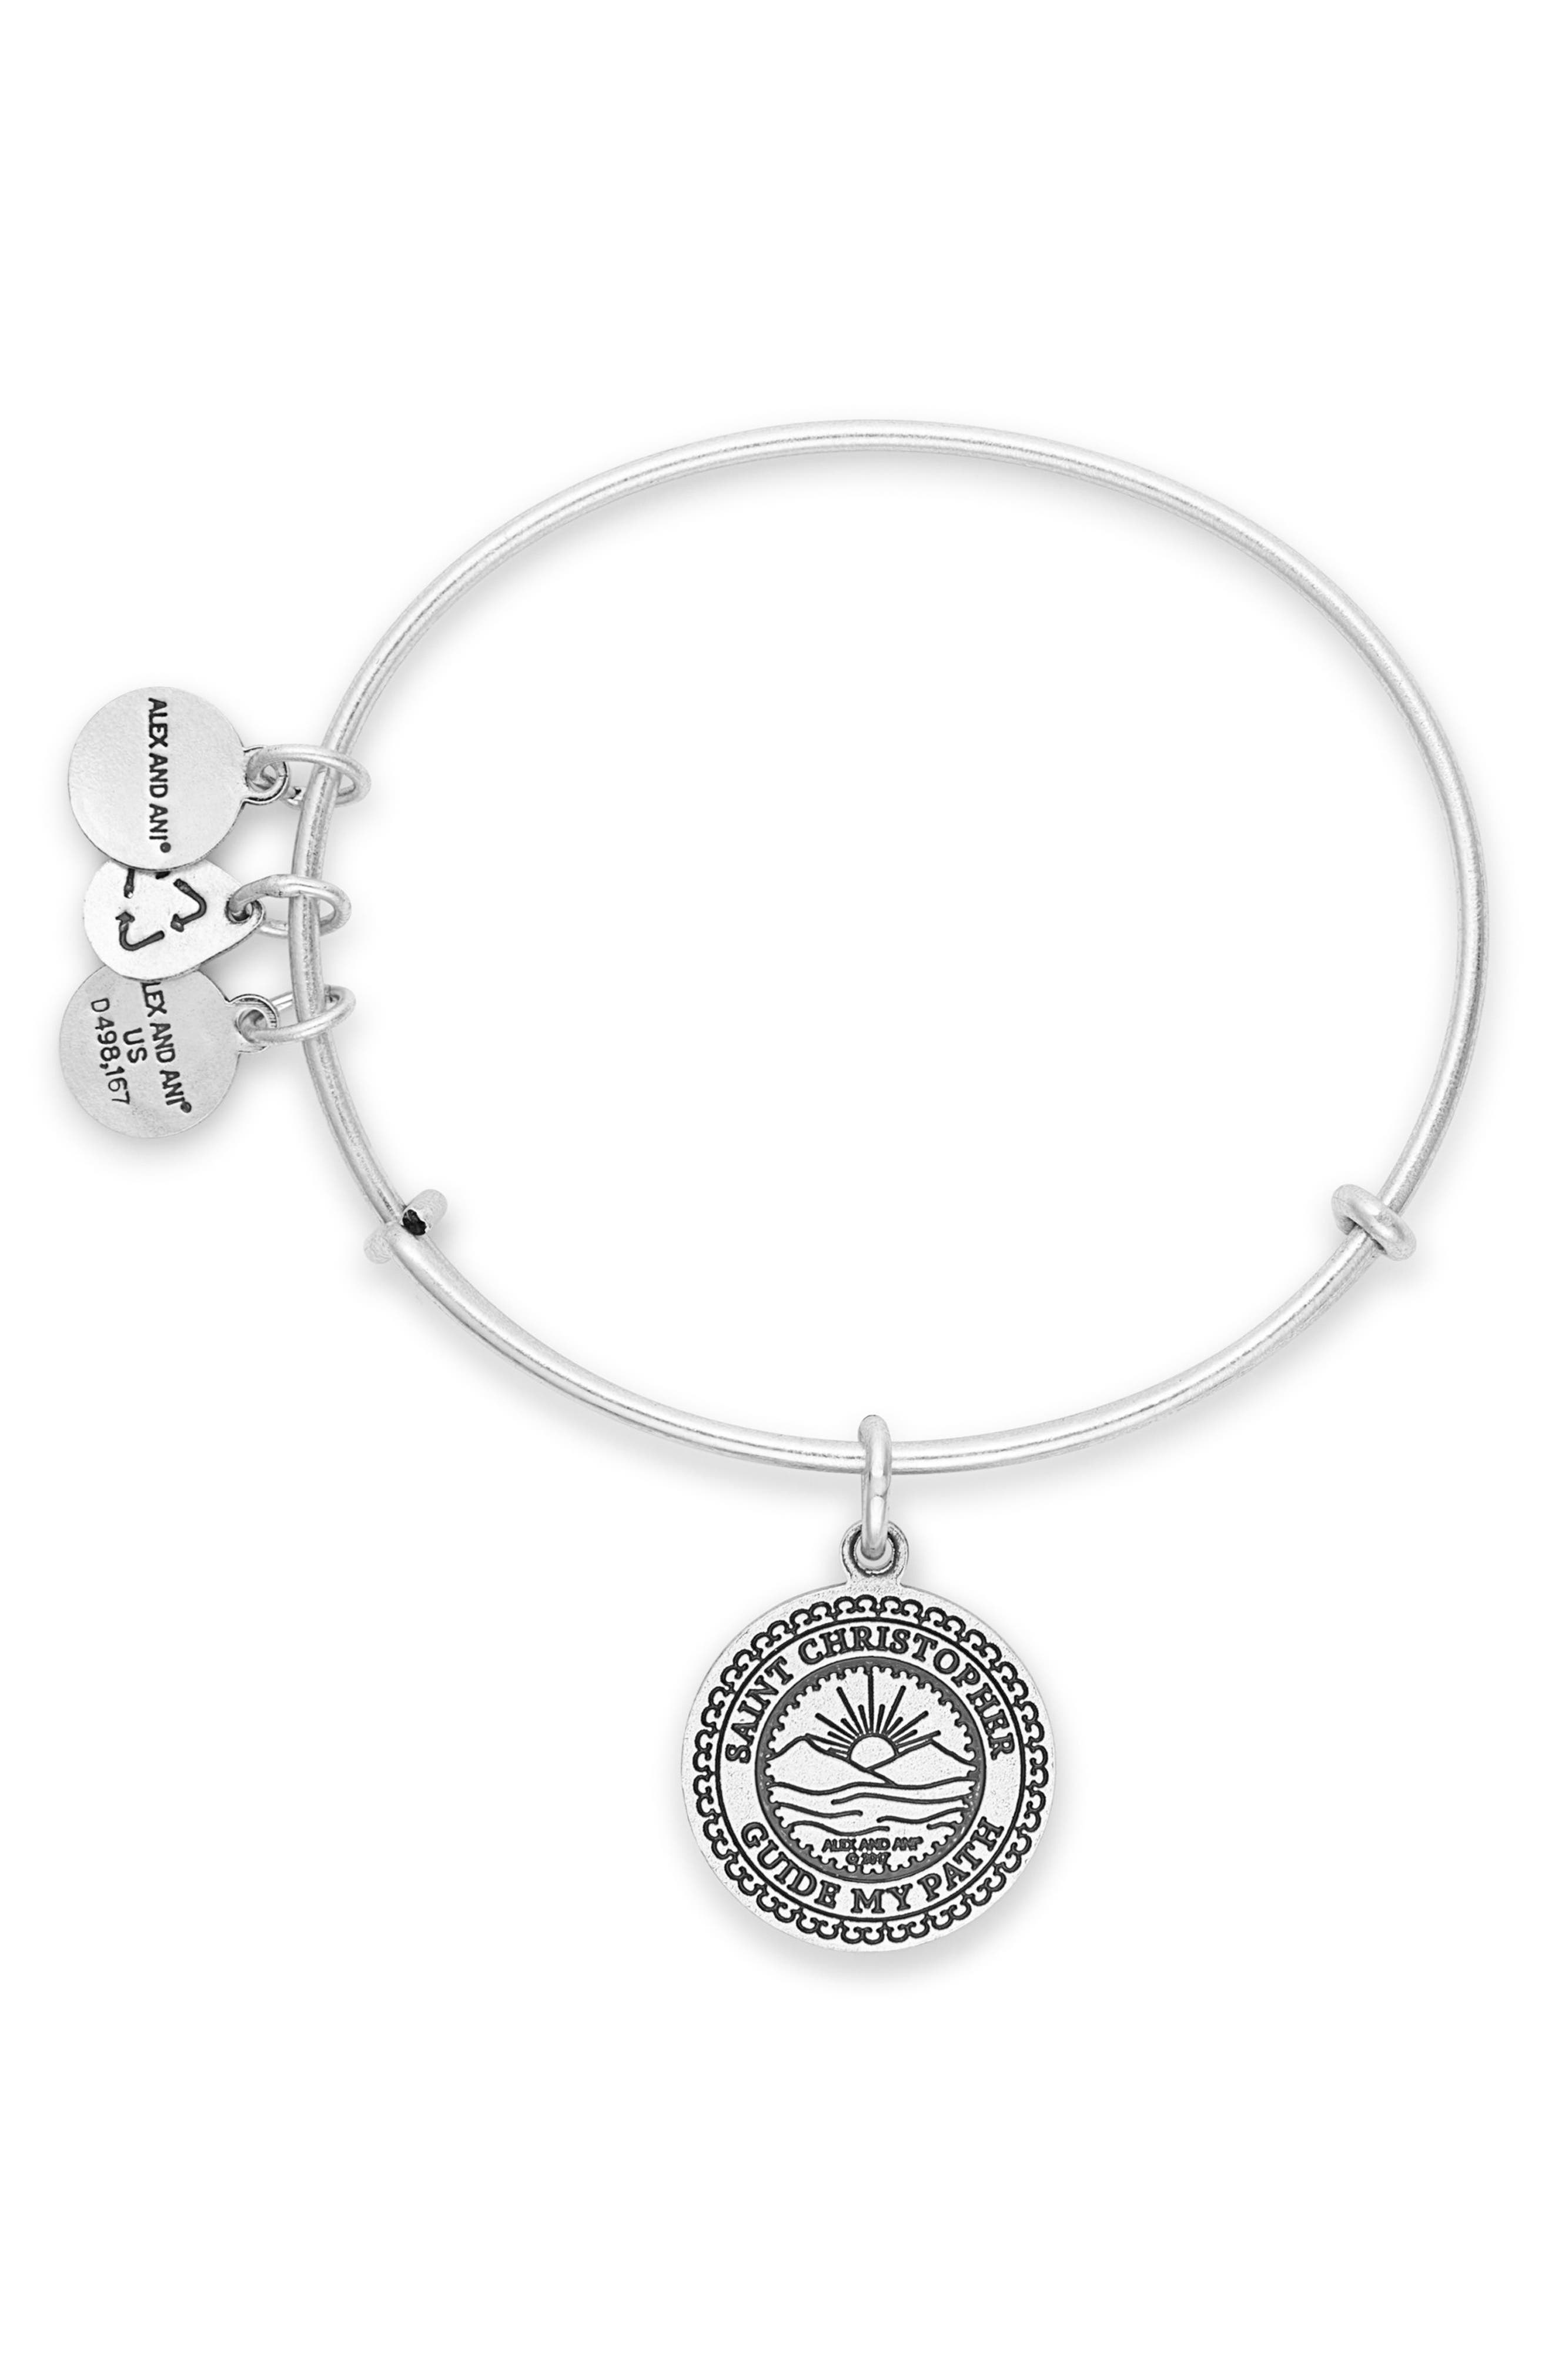 St. Christopher Adjustable Wire Bangle,                             Alternate thumbnail 2, color,                             Silver